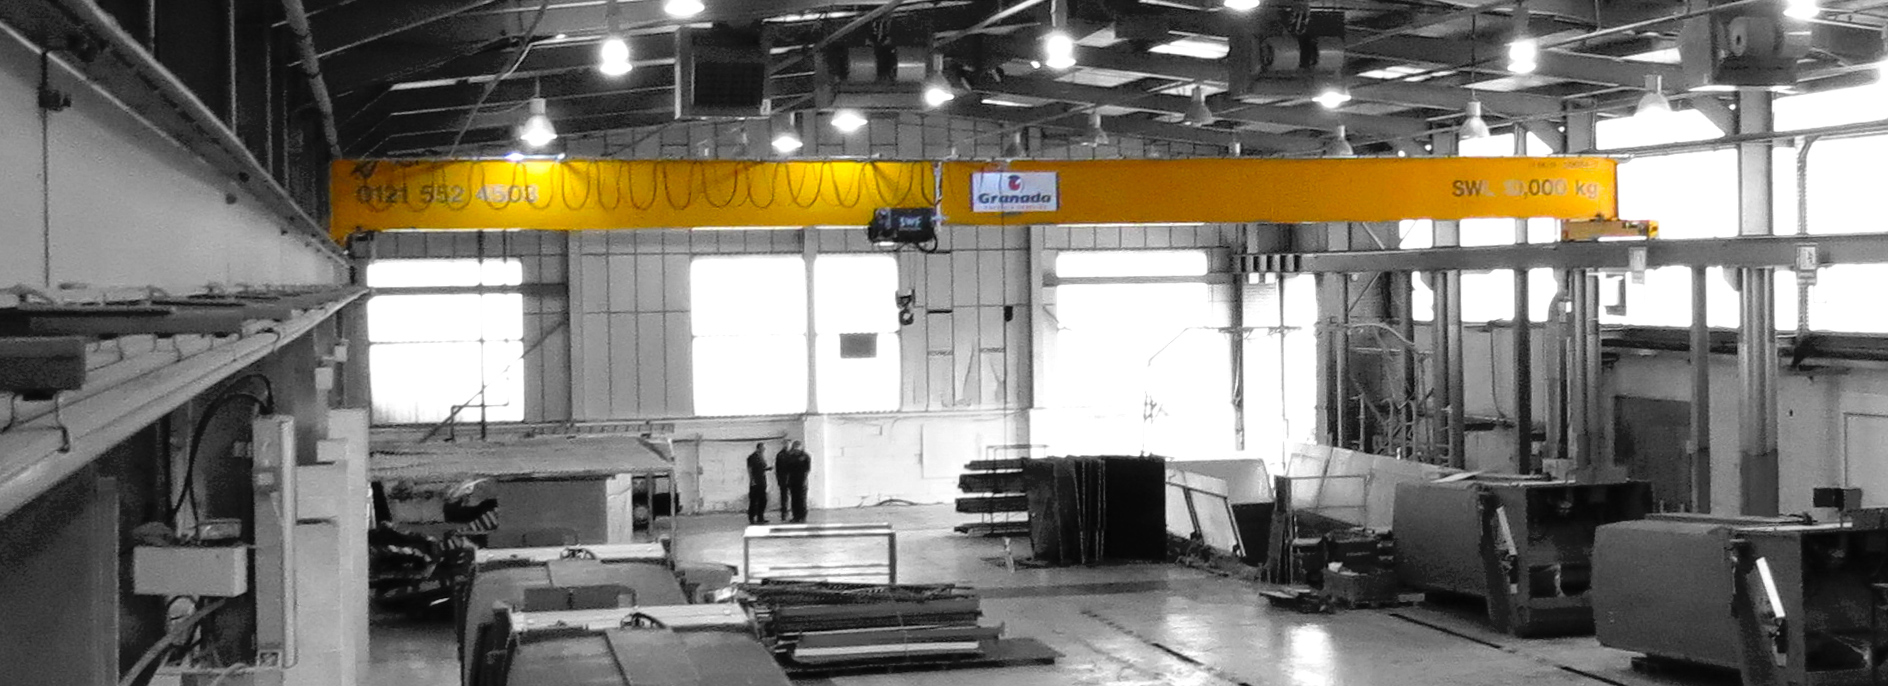 Overhead Cranes supplied and installed by Granada Cranes and Handling